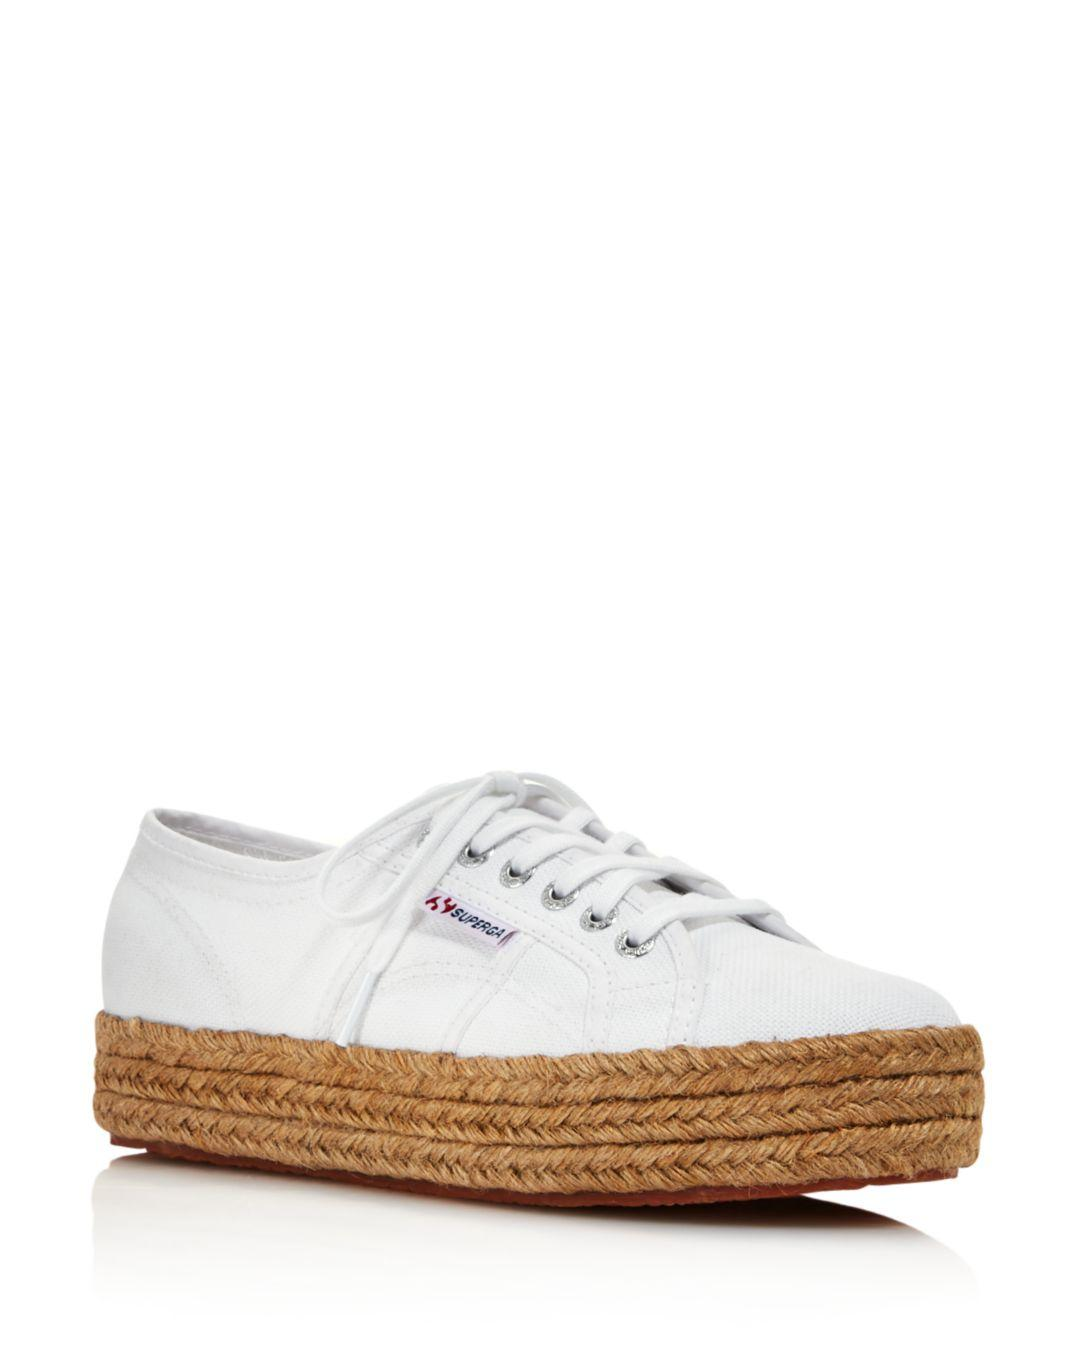 21ab5a2102a4b Superga Women's 2790 Cotropew Flatform Espadrille Trainers in White ...